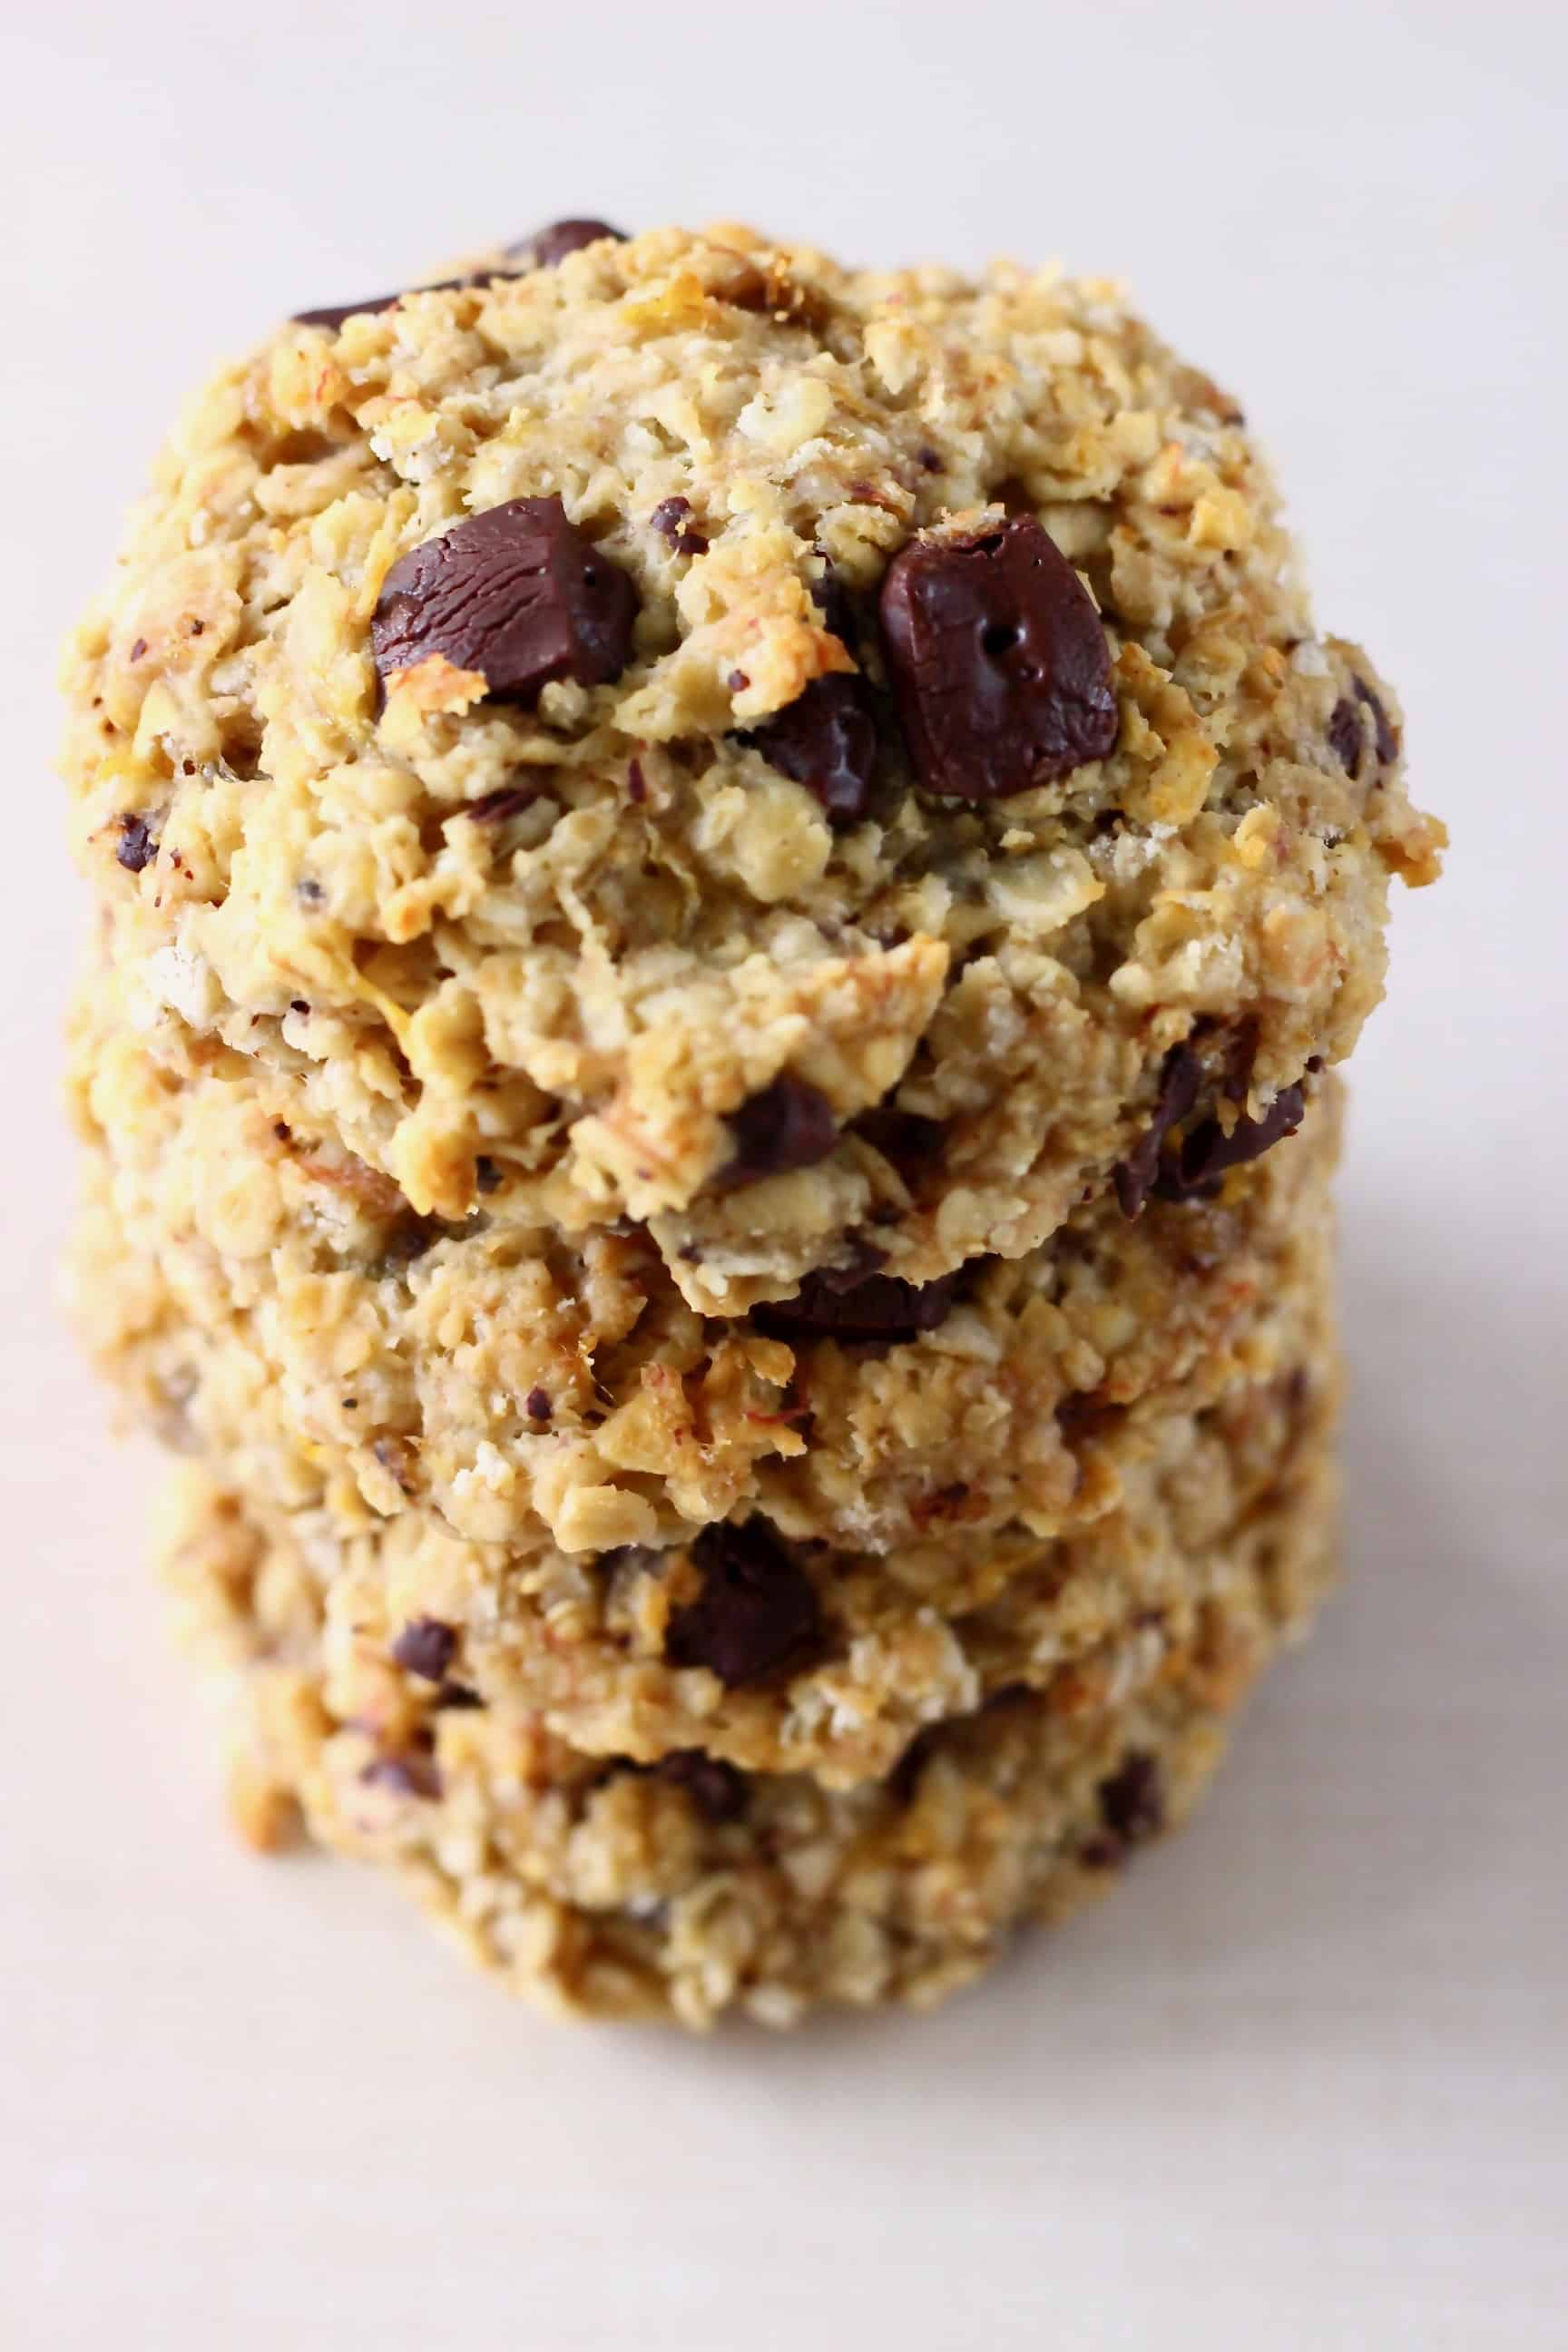 A stack of four gluten-free vegan banana oatmeal cookies with chocolate chips